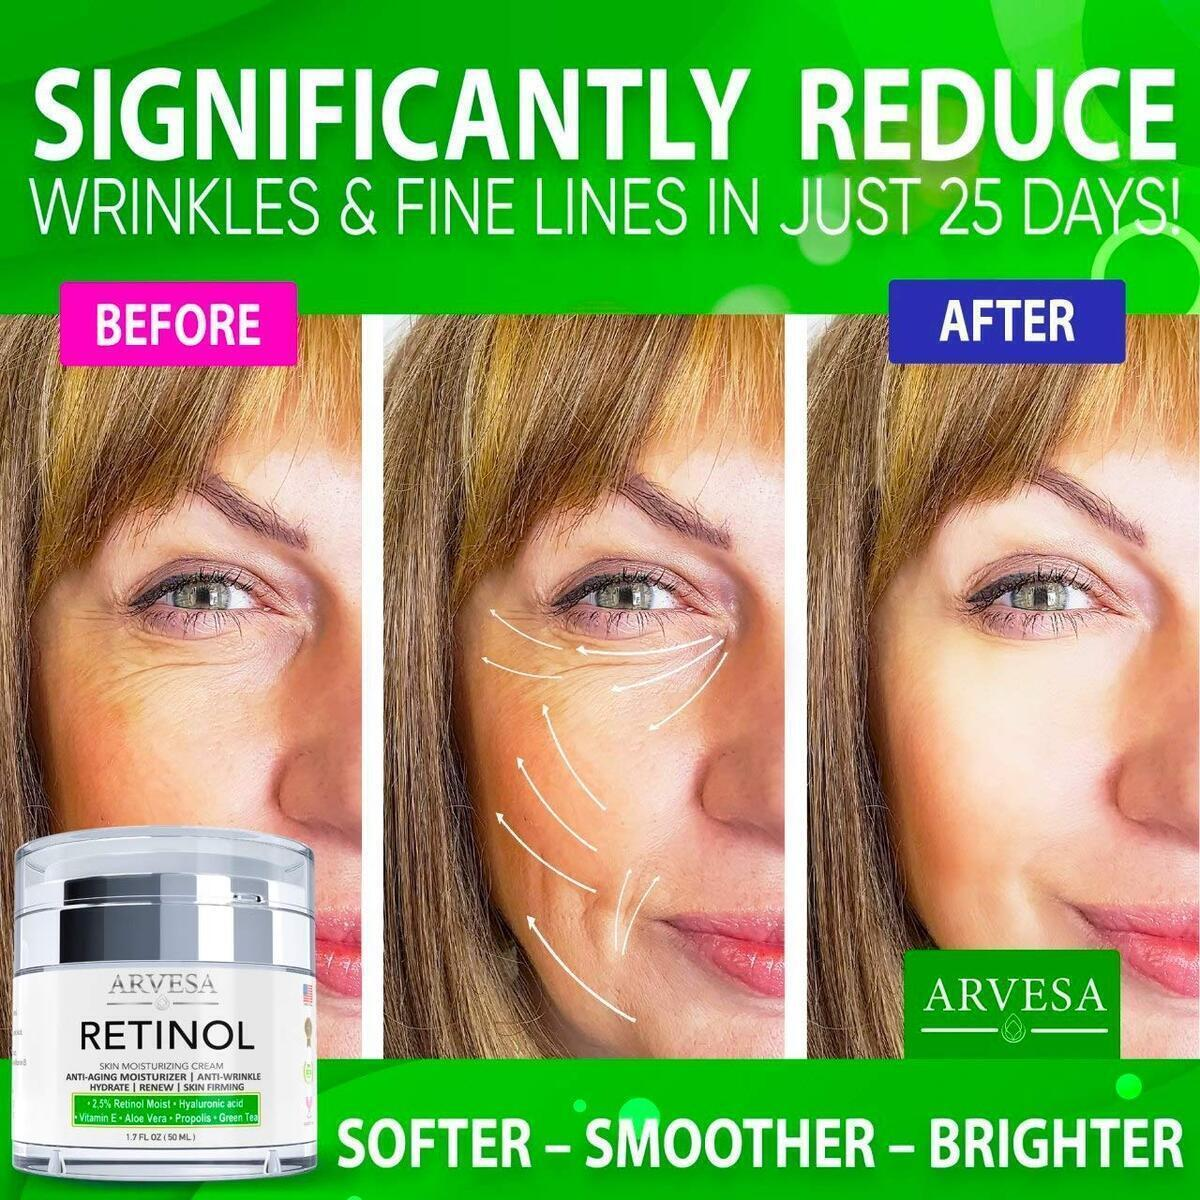 Anti Aging Retinol Moisturizer Cream for Face, Neck & Décolleté - Made in USA - Wrinkle Cream for Women and Men with Hyaluronic Acid and Active Retinol 2.5% - Best Day and Night - Results in 4 Weeks